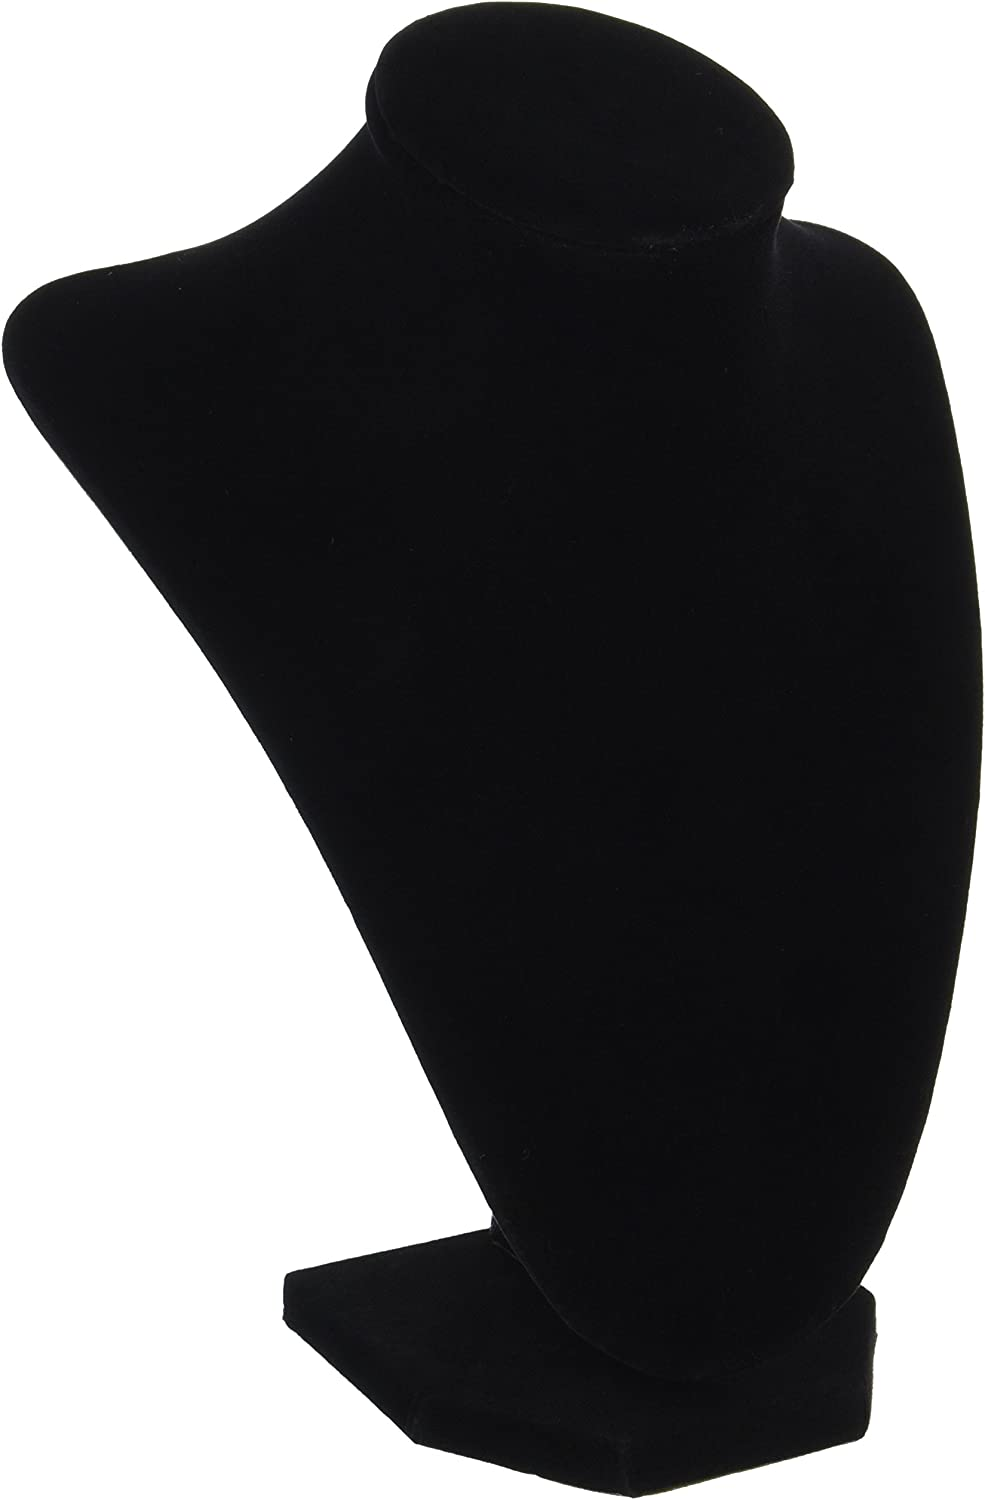 Update Version 3-Dimensional Velvet Jewelry Stand Black 9-Inch